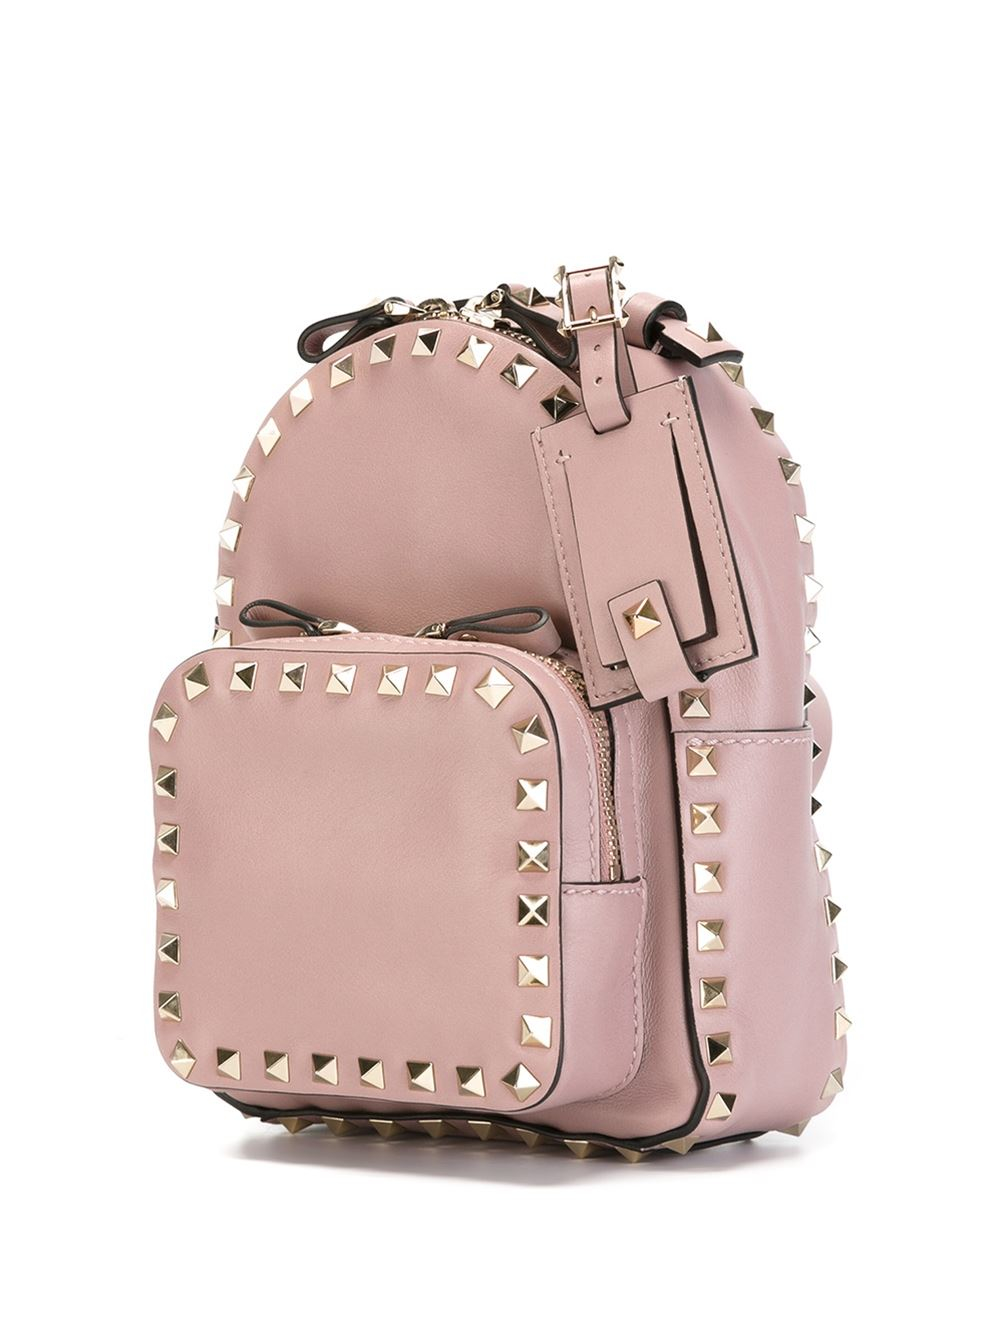 44a5ccd530 Valentino Mini 'rockstud' Backpack in Pink - Lyst